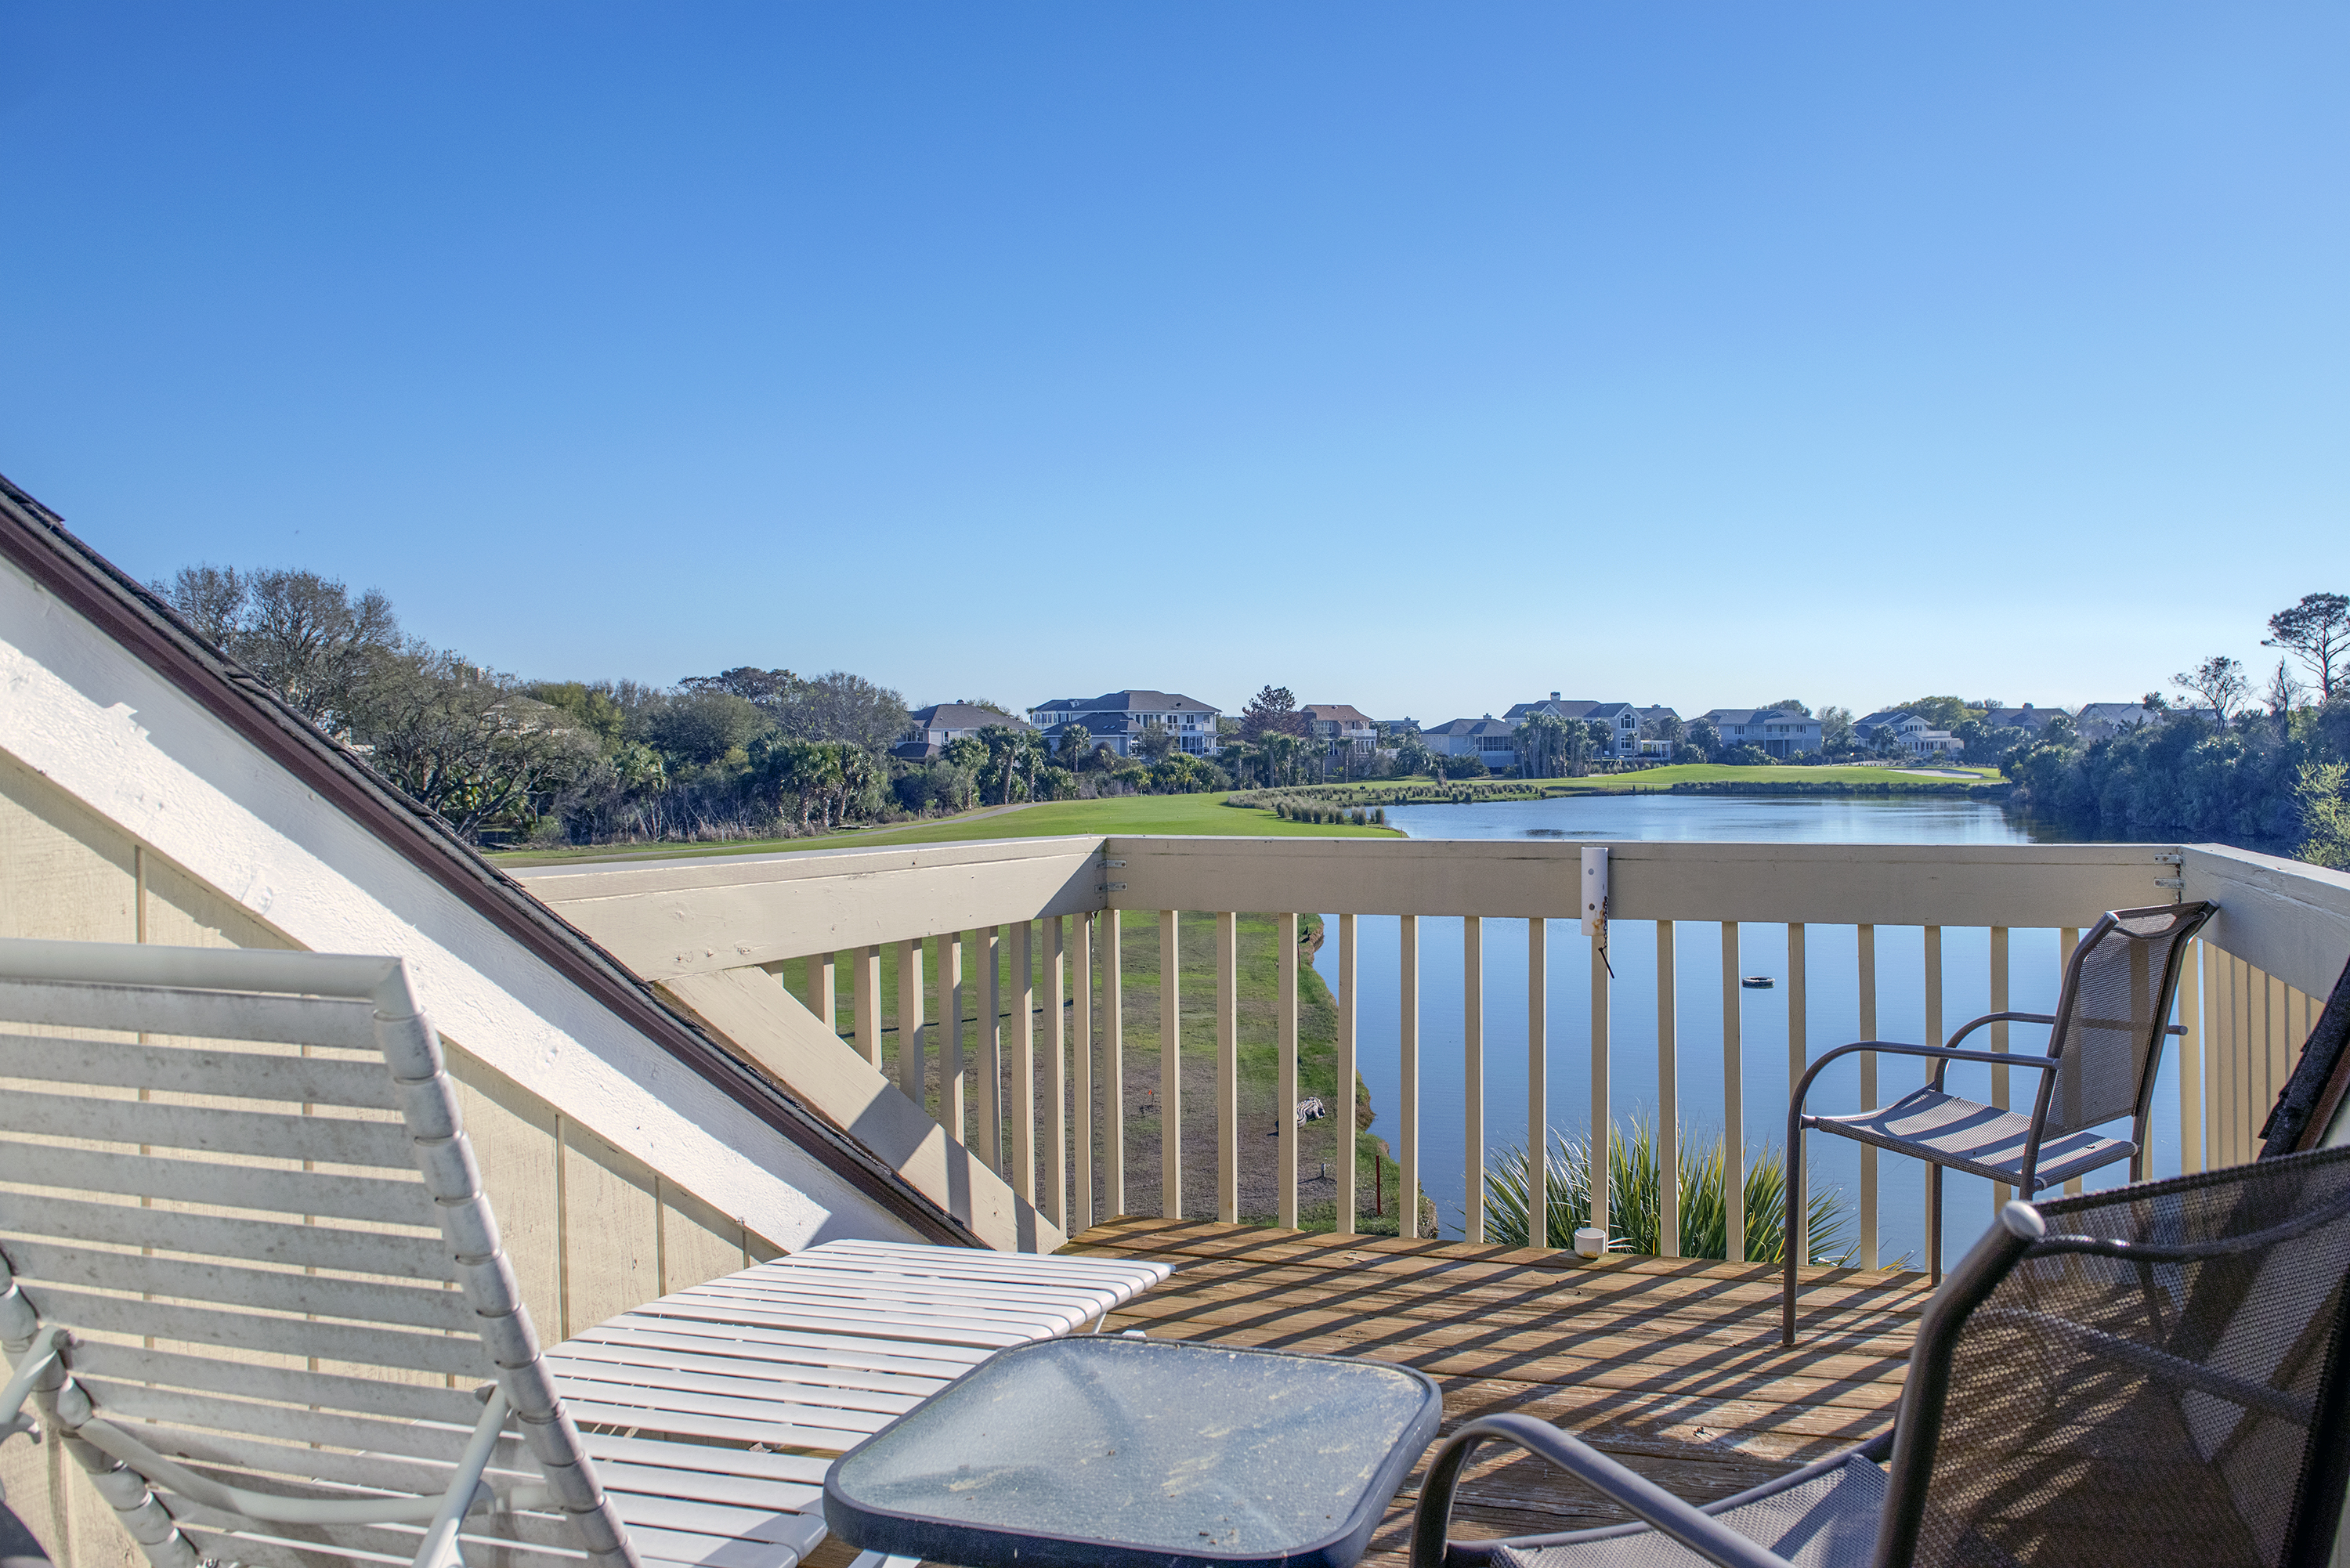 The sun deck has chairs and a chaise to relax in while enjoying the view.